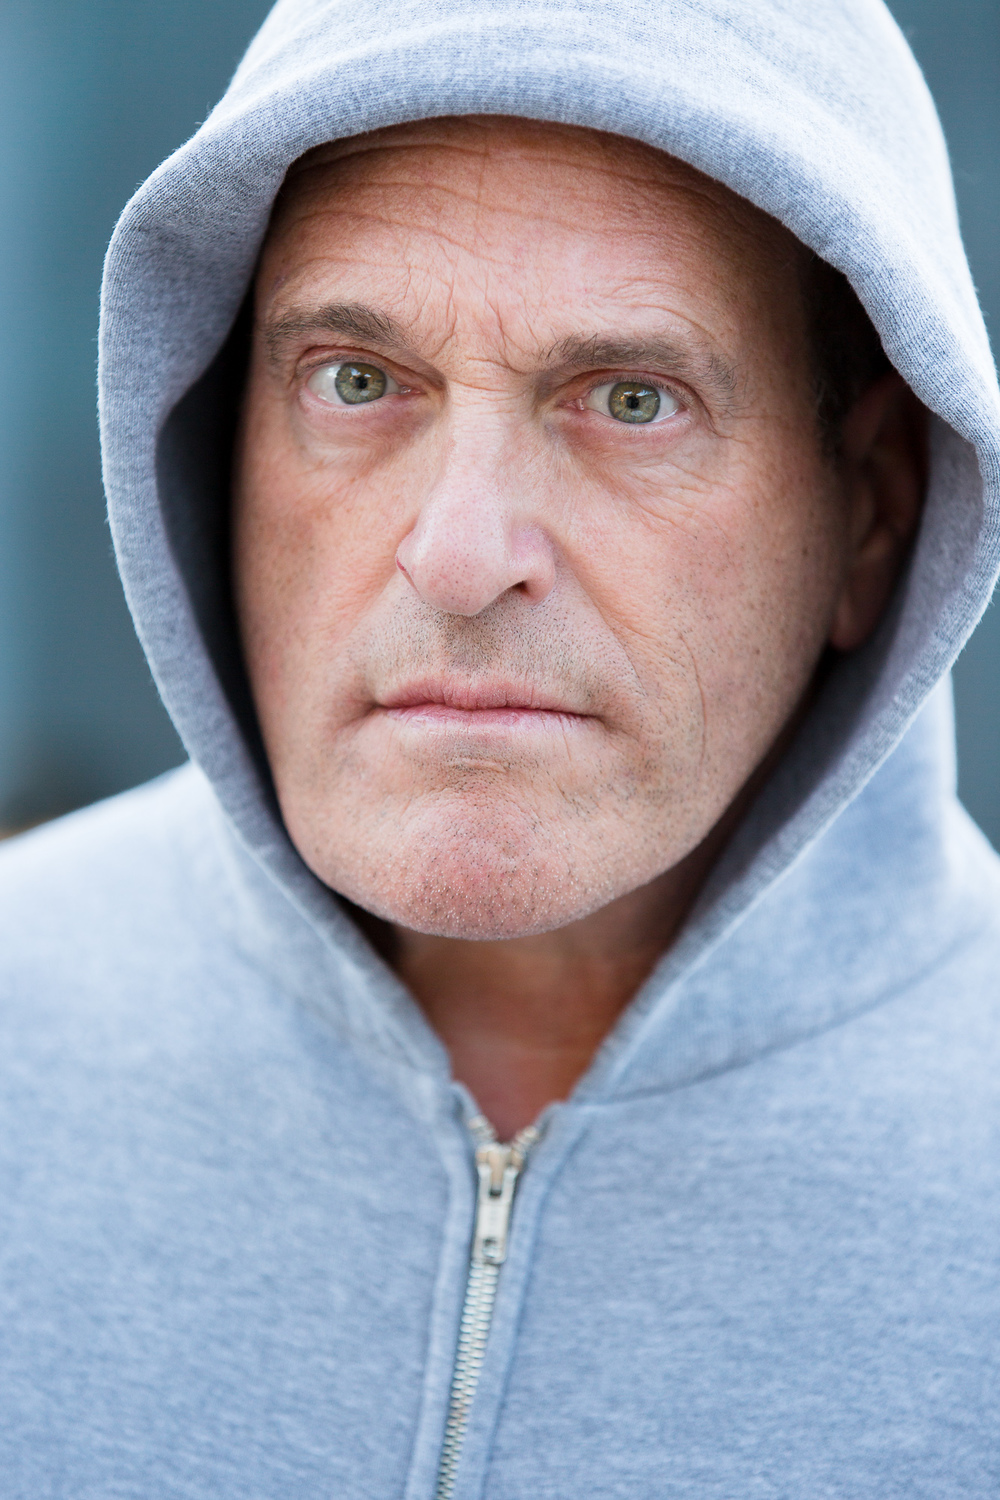 138_Rod Futterweit Headshots-Edit-WEB.jpg